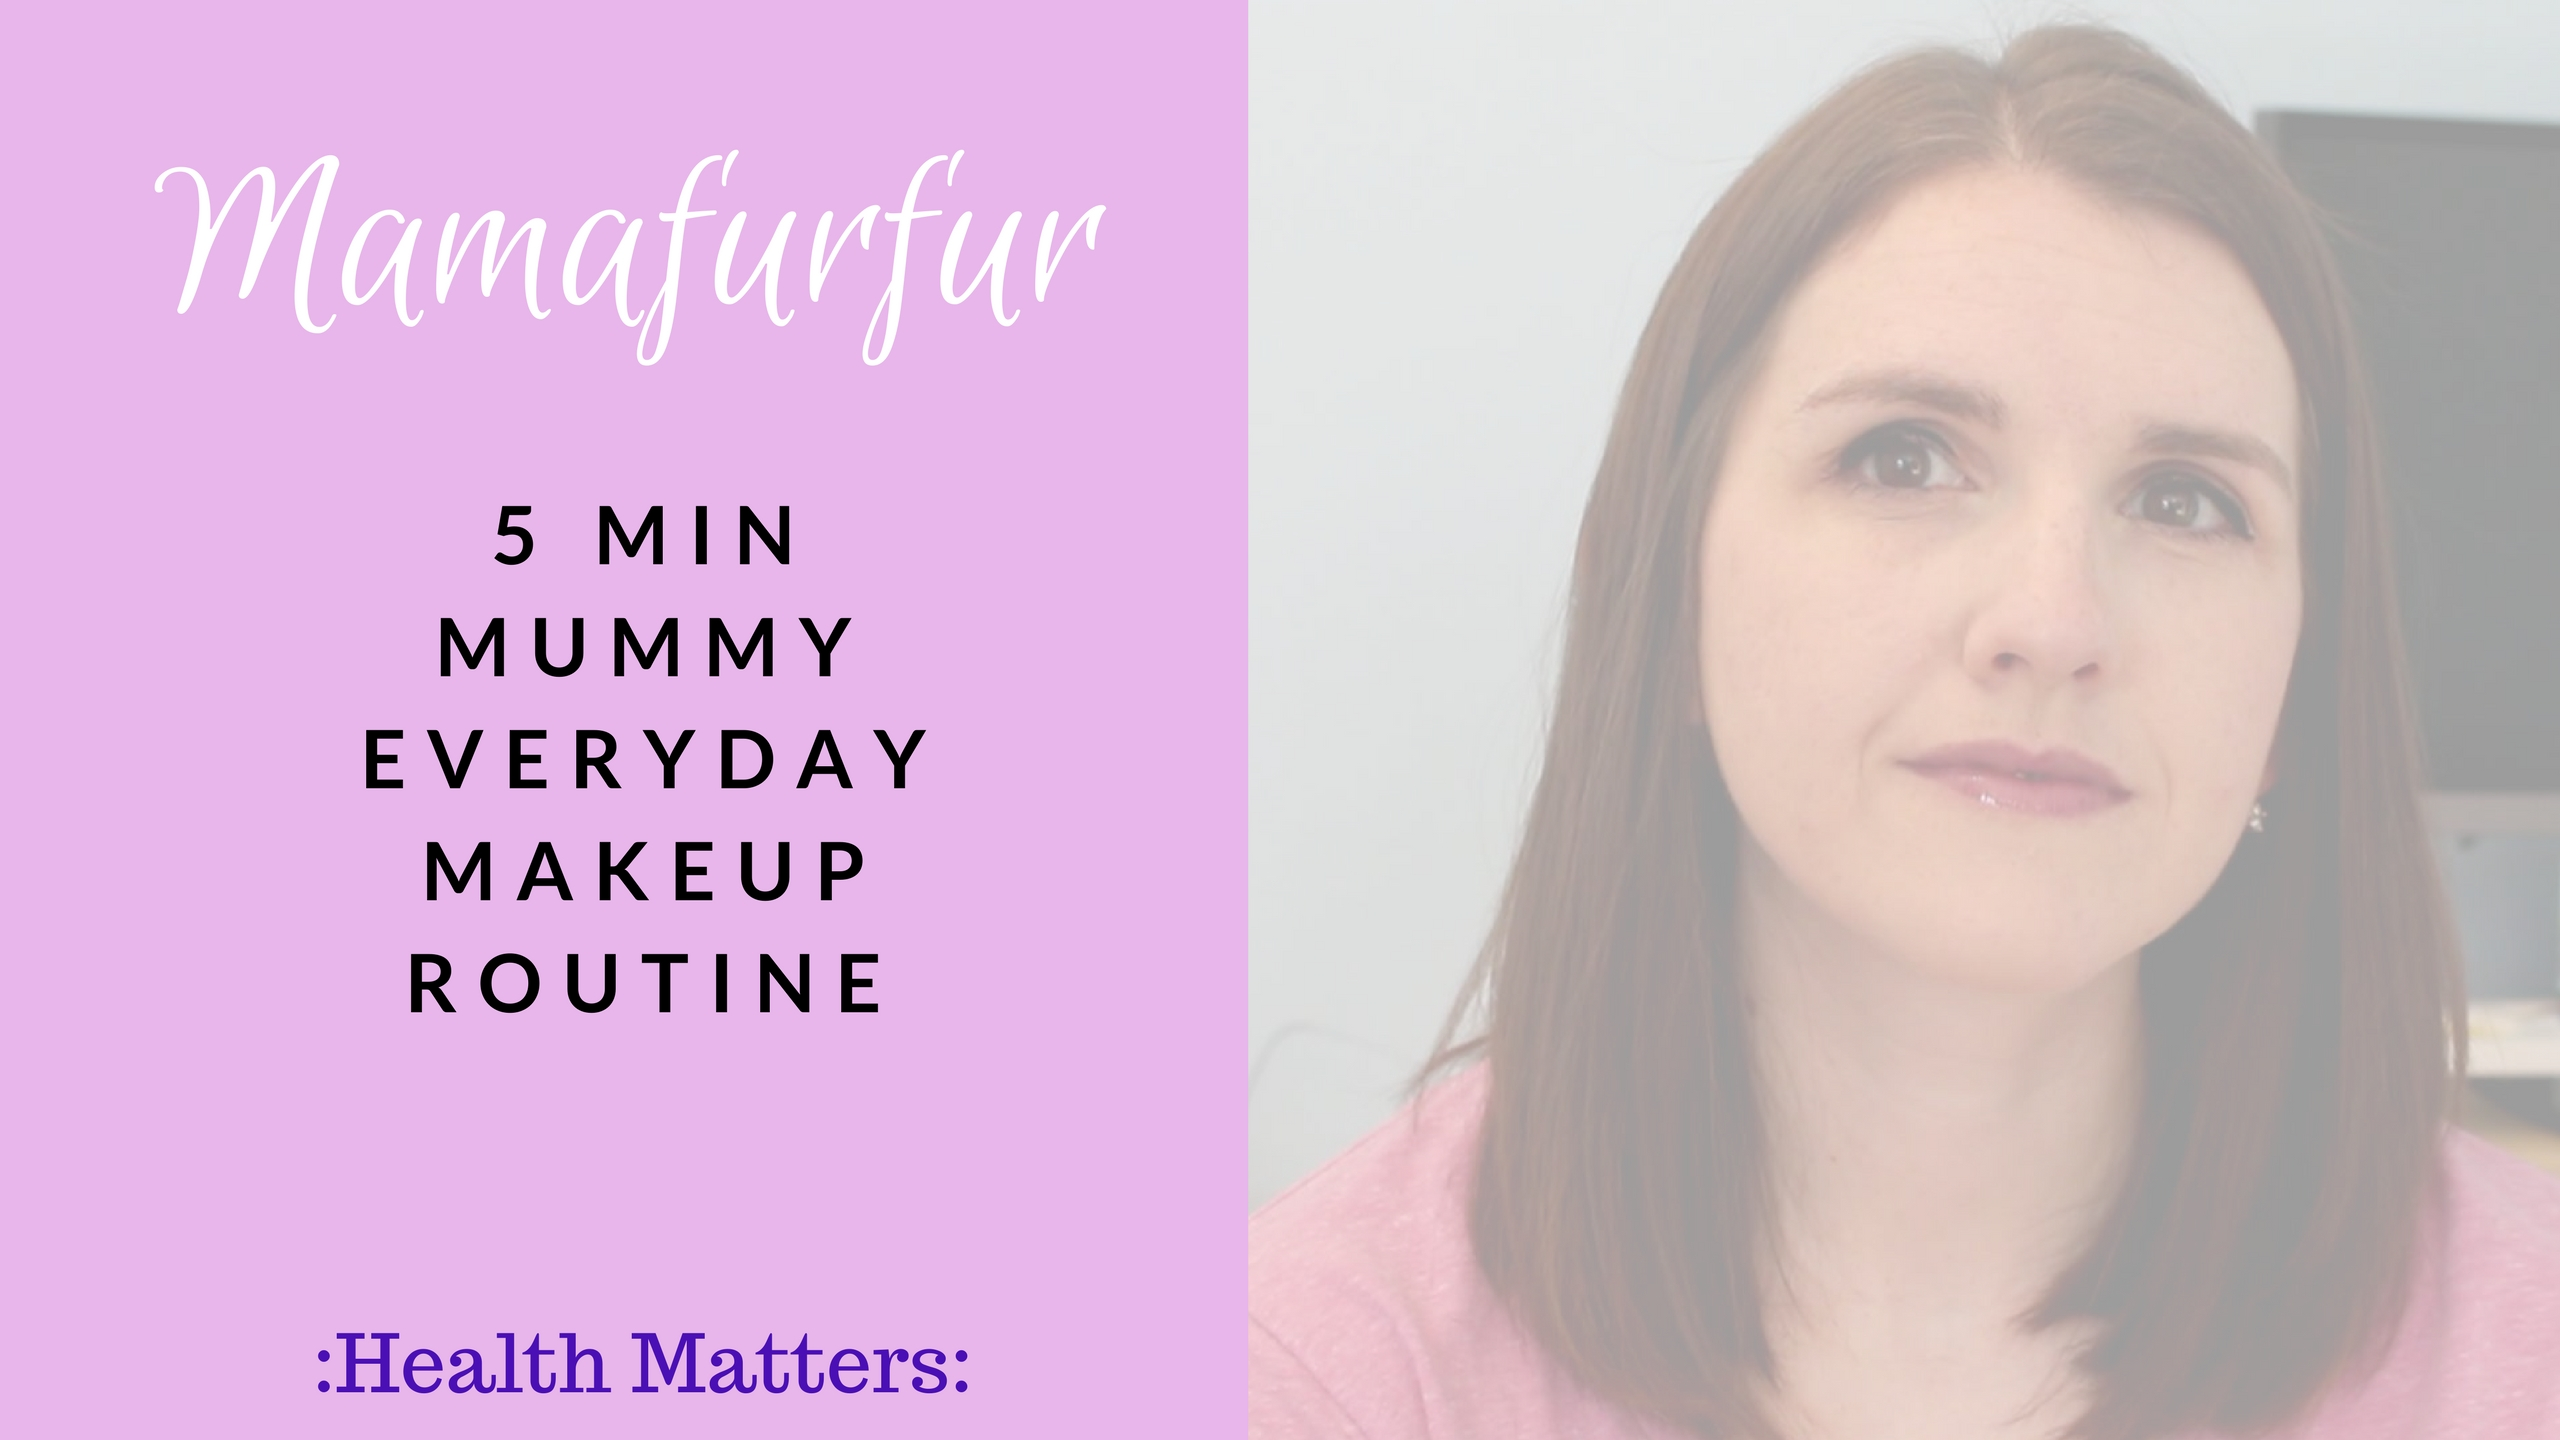 5 Min Mummy Everyday Makeup Routine ¦ Mamafurfur ¦ Beauty Routines